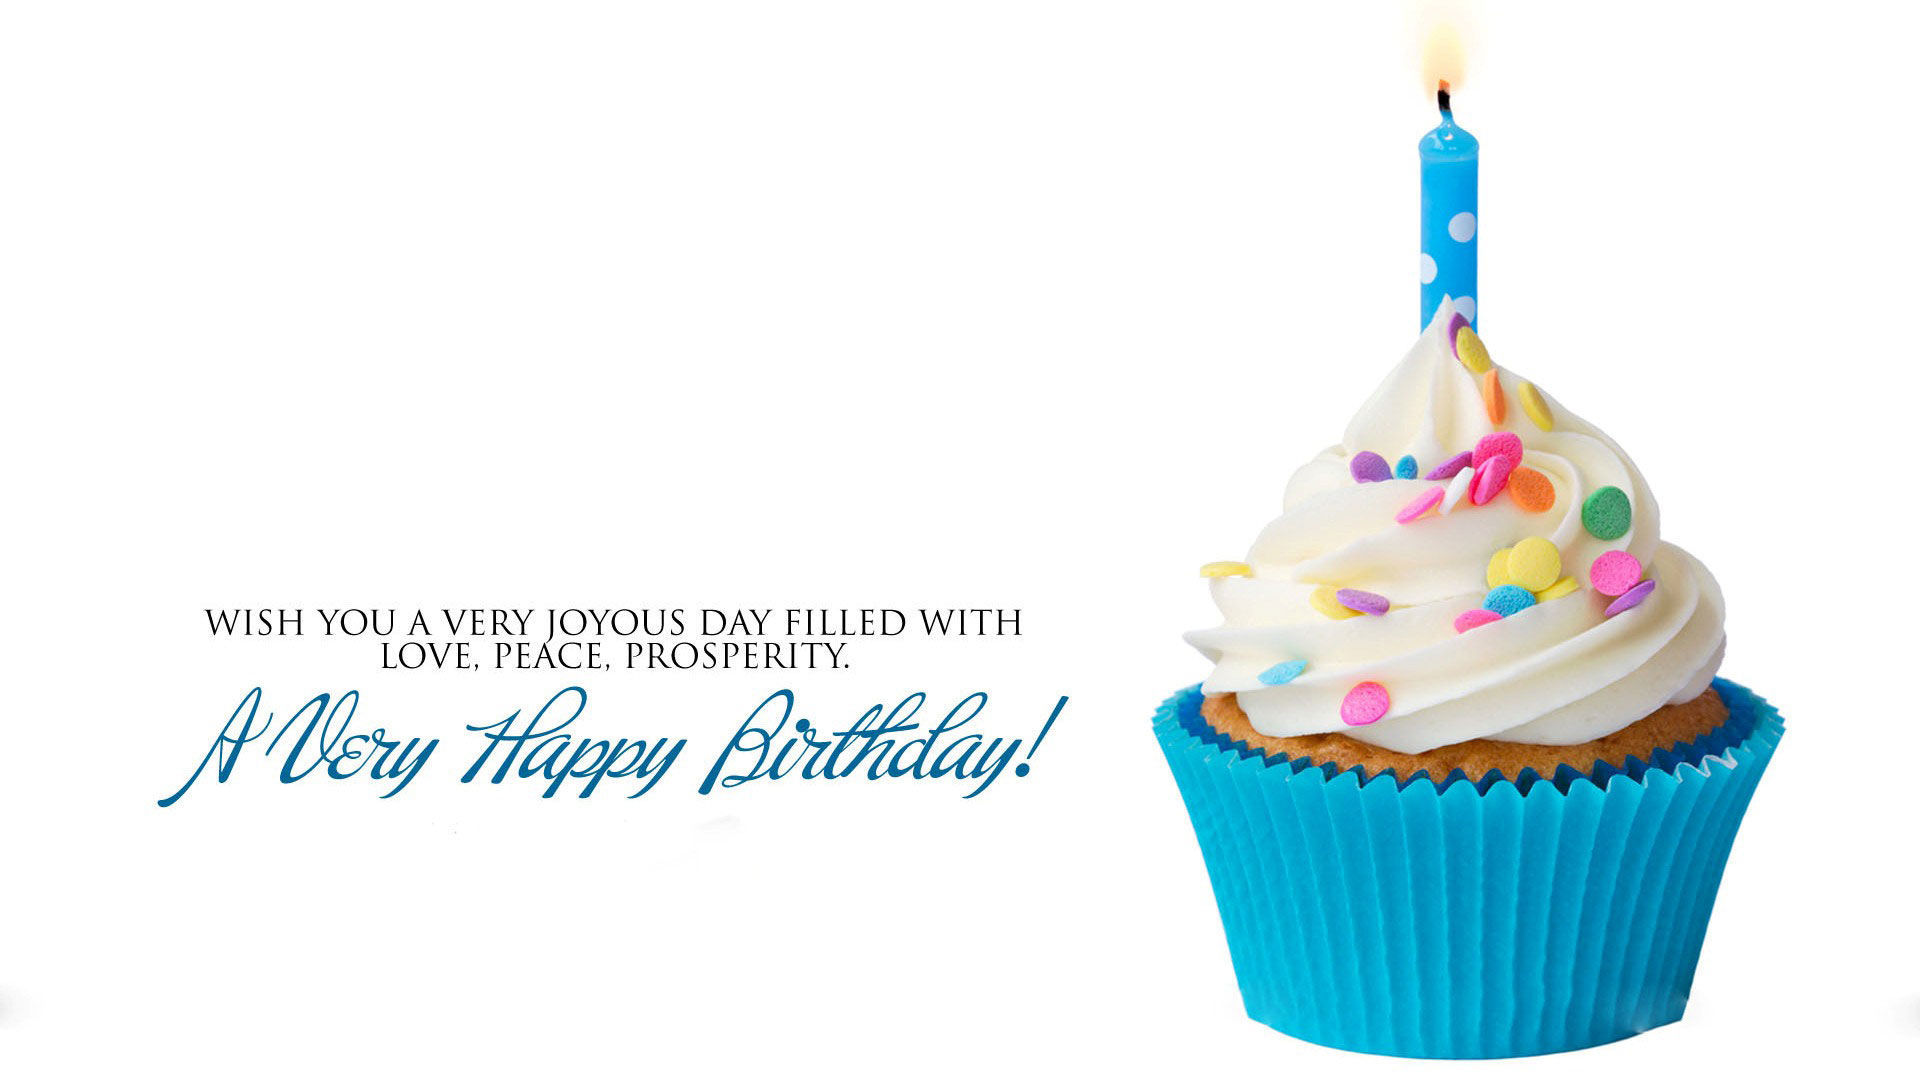 birthday hd images with quotes ; hd-pics-photos-awesome-happy-birthday-wishes-cake-candle-birthday-quotes-for-facebook--hd-quality-desktop-background-wallpaper